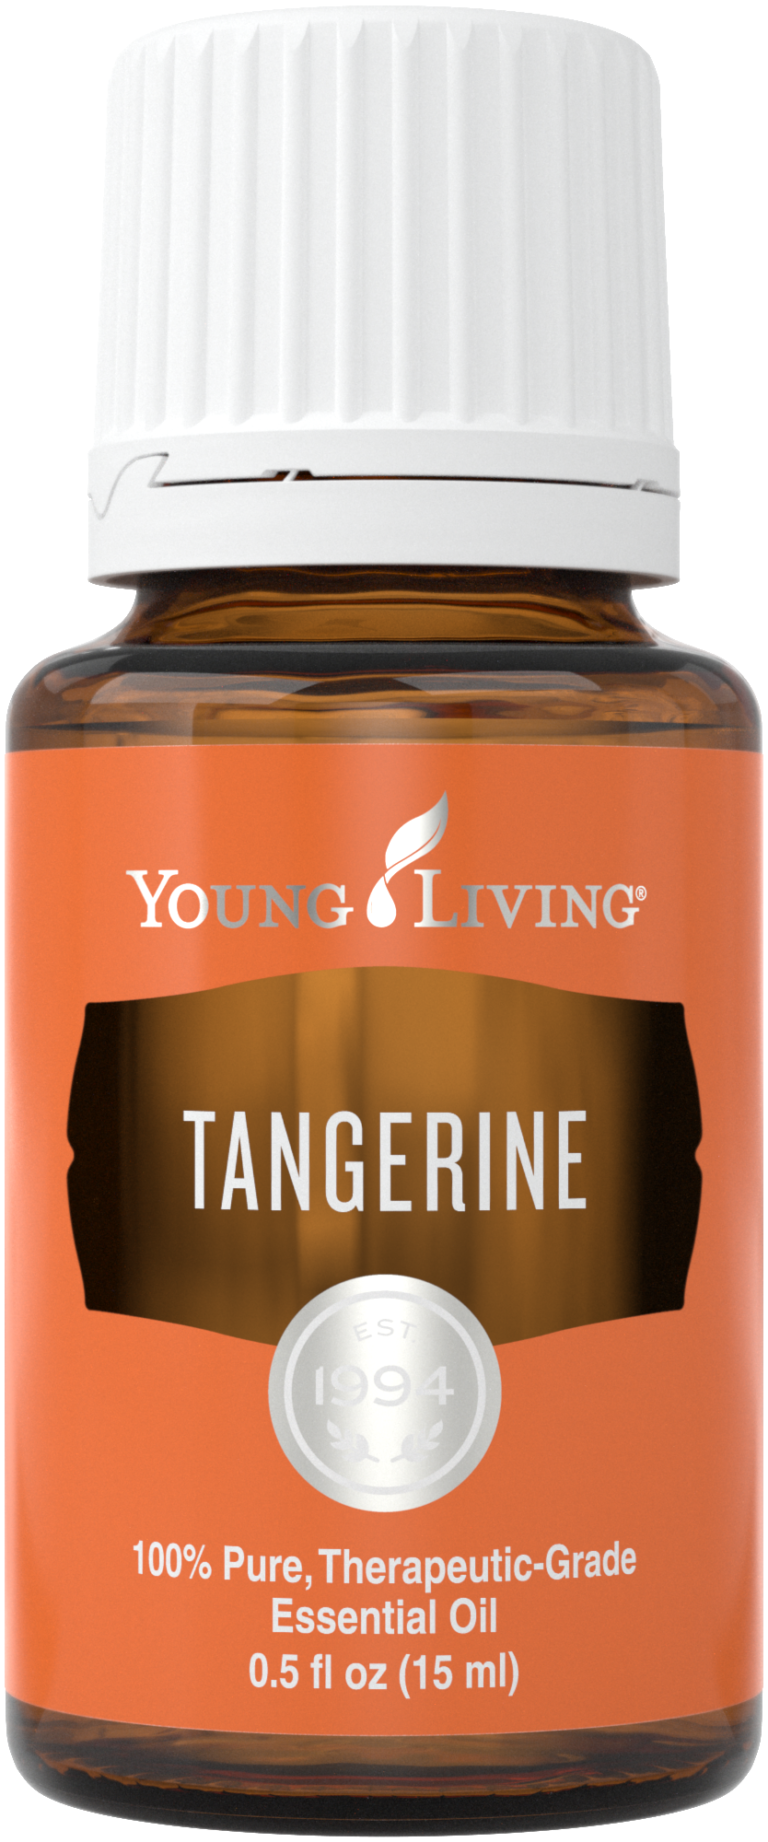 tangerine_15ml_silo_us_2016_24419025142_o